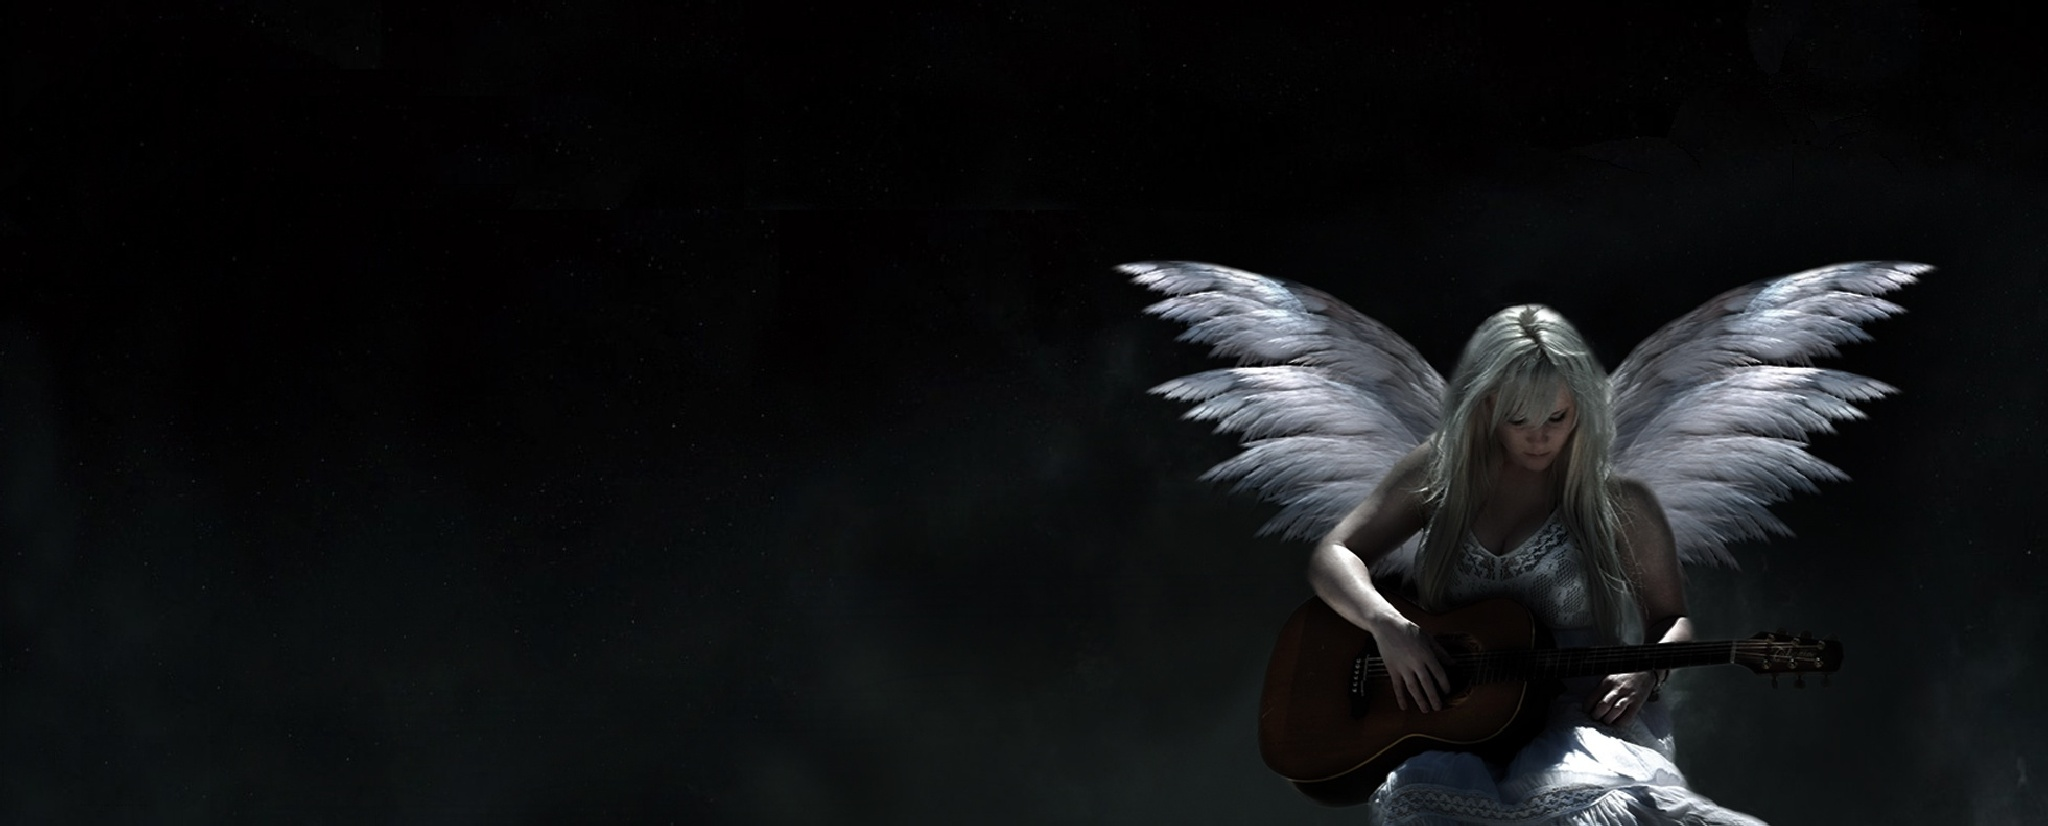 Angel With Guitar Photoshop Art by TheHilaryClark